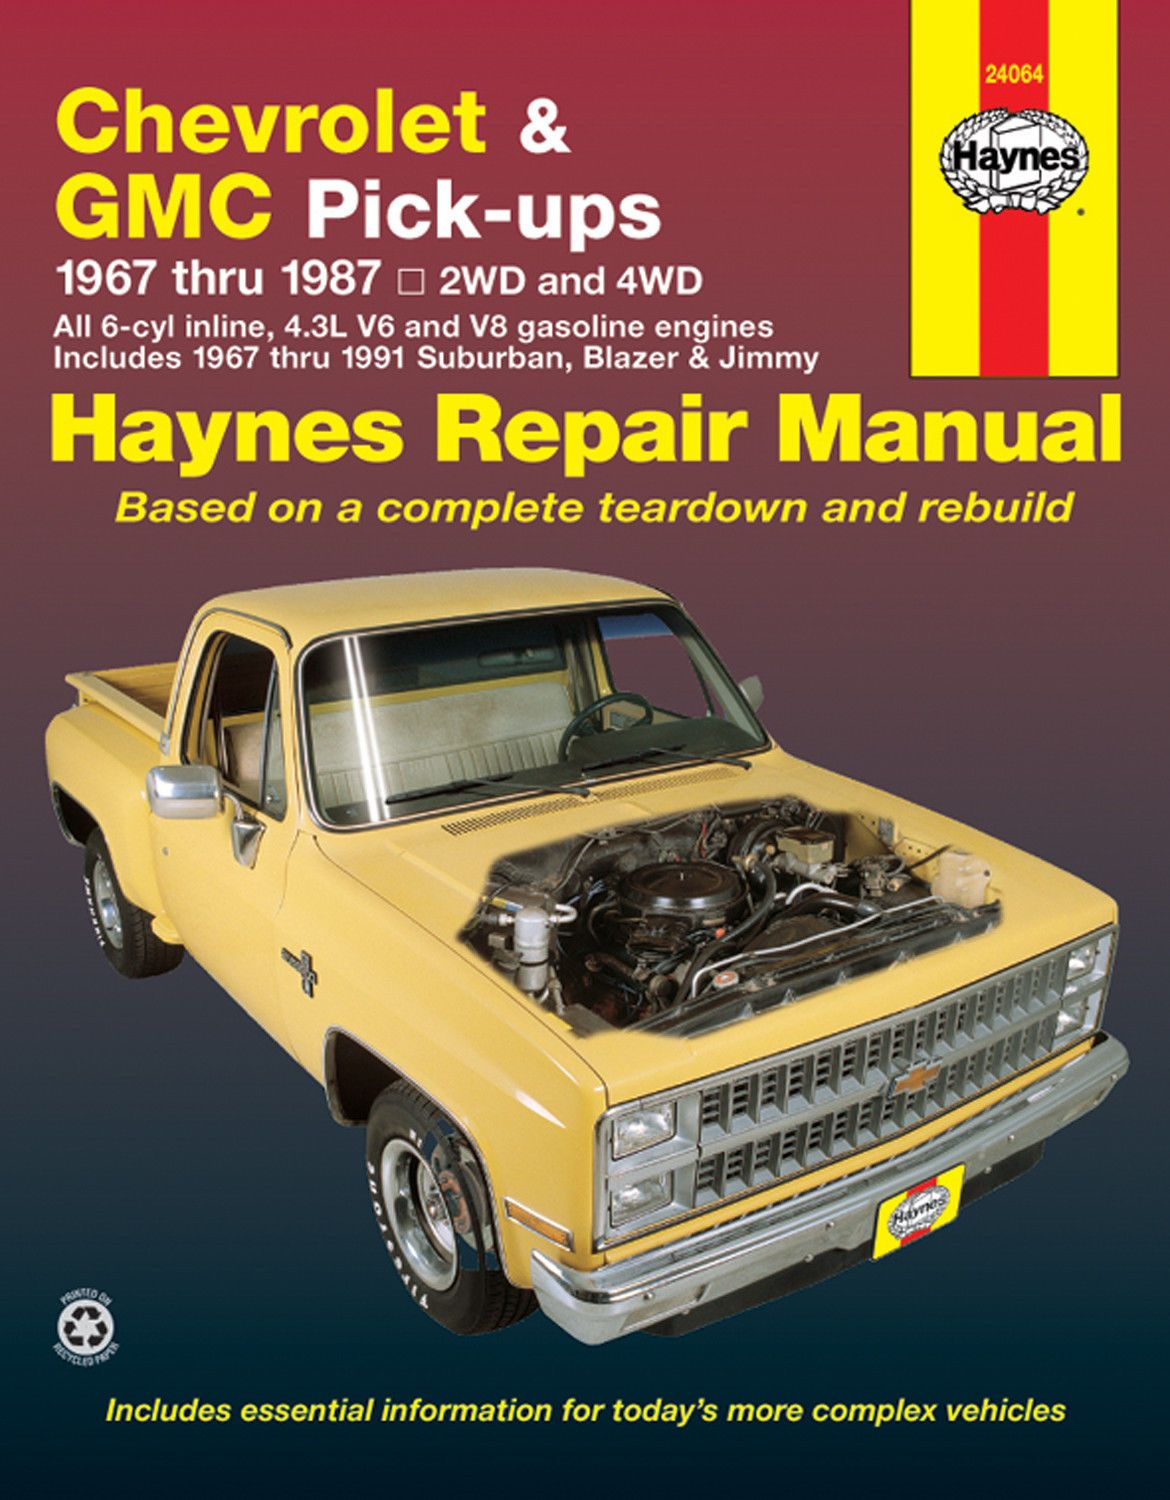 Explore Repair Manuals, Book Outlet, and more!